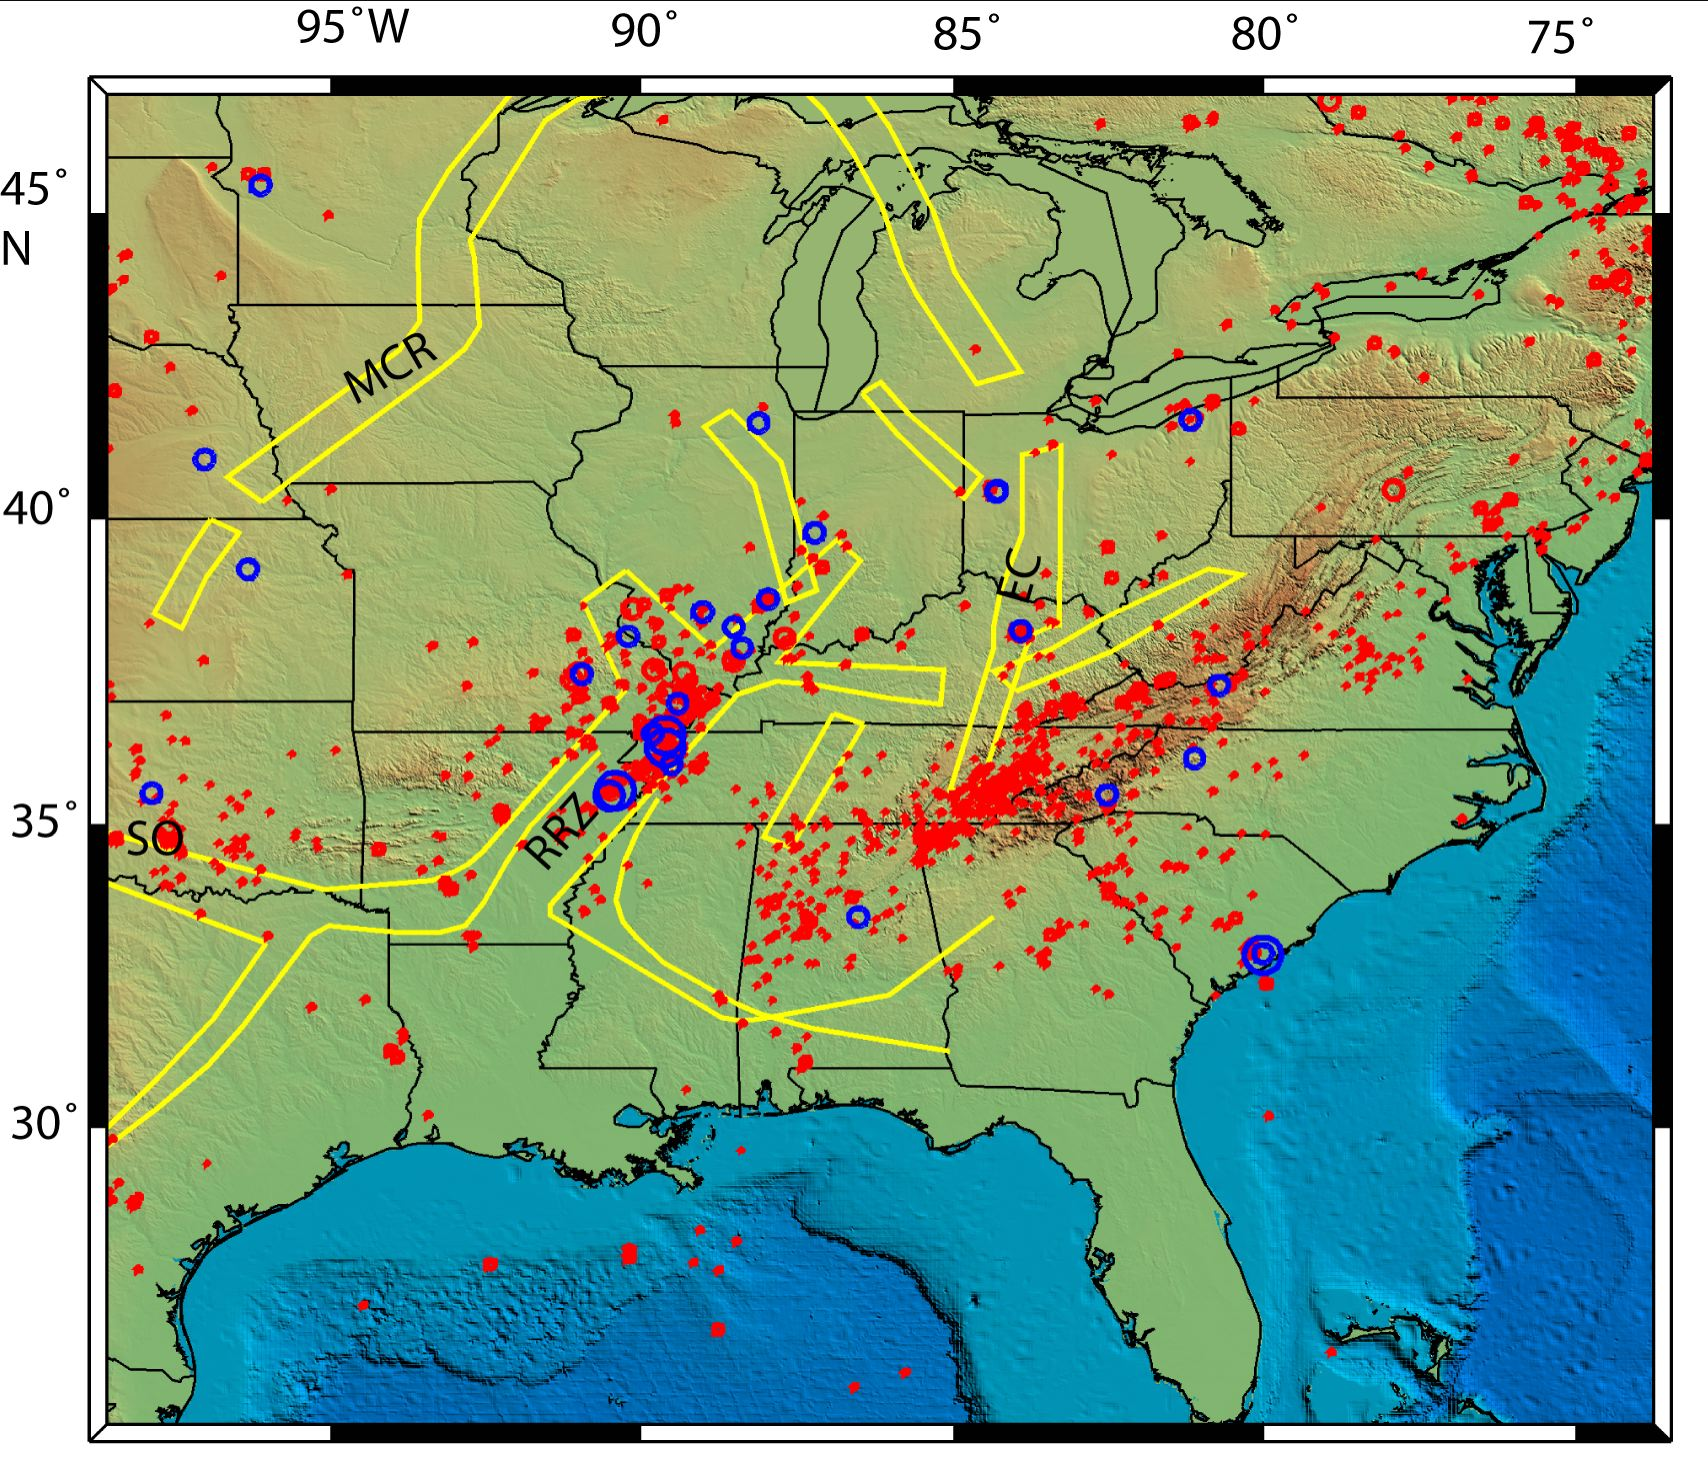 New Madrid Seismic Zone A Cold Dying Fault